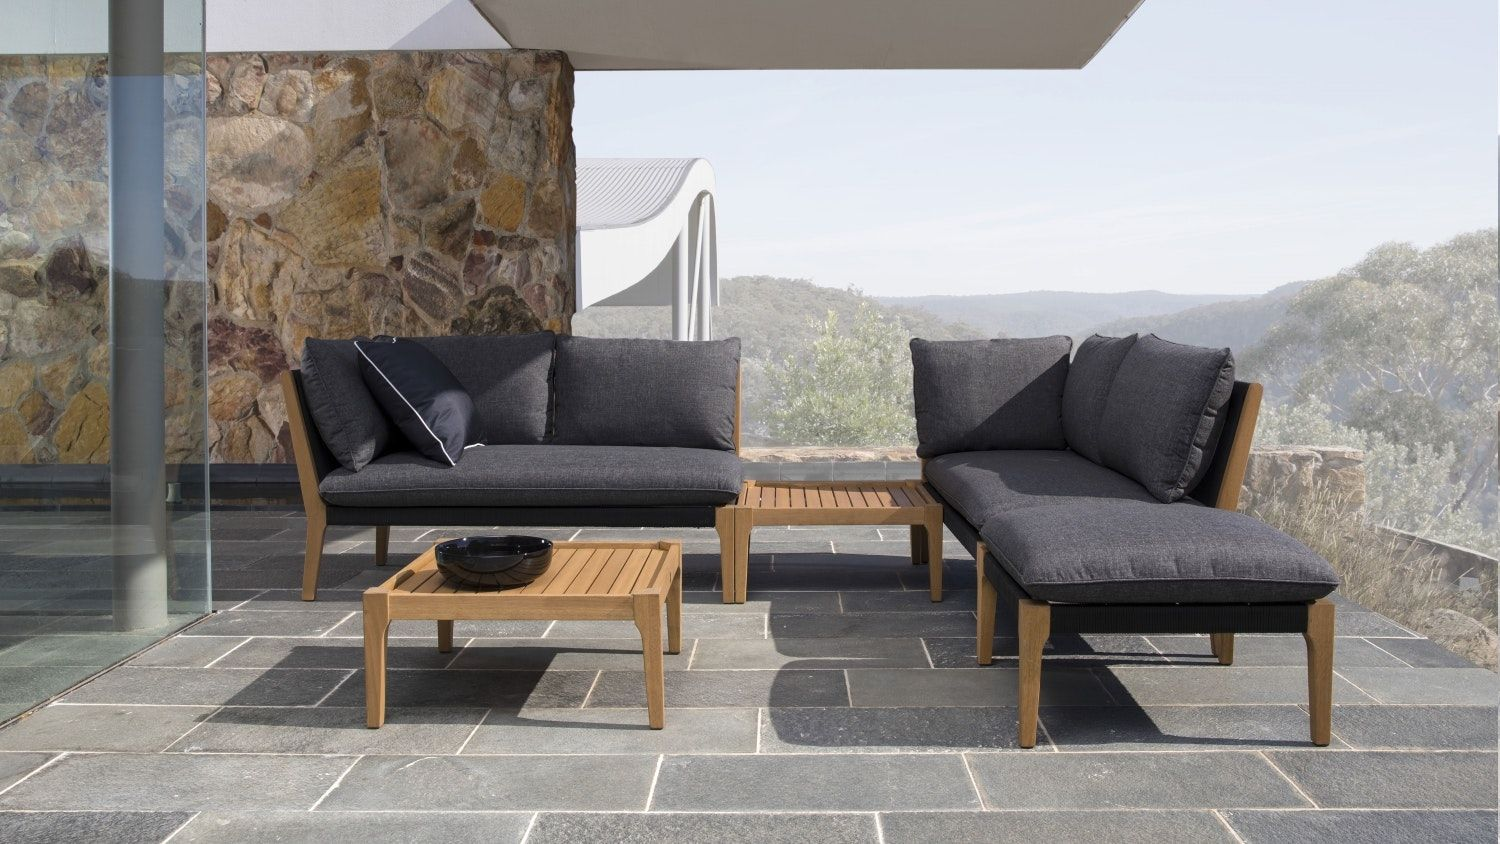 Large Modular Lounge Koa Outdoor Modular Lounge Deco Decisions Outdoor